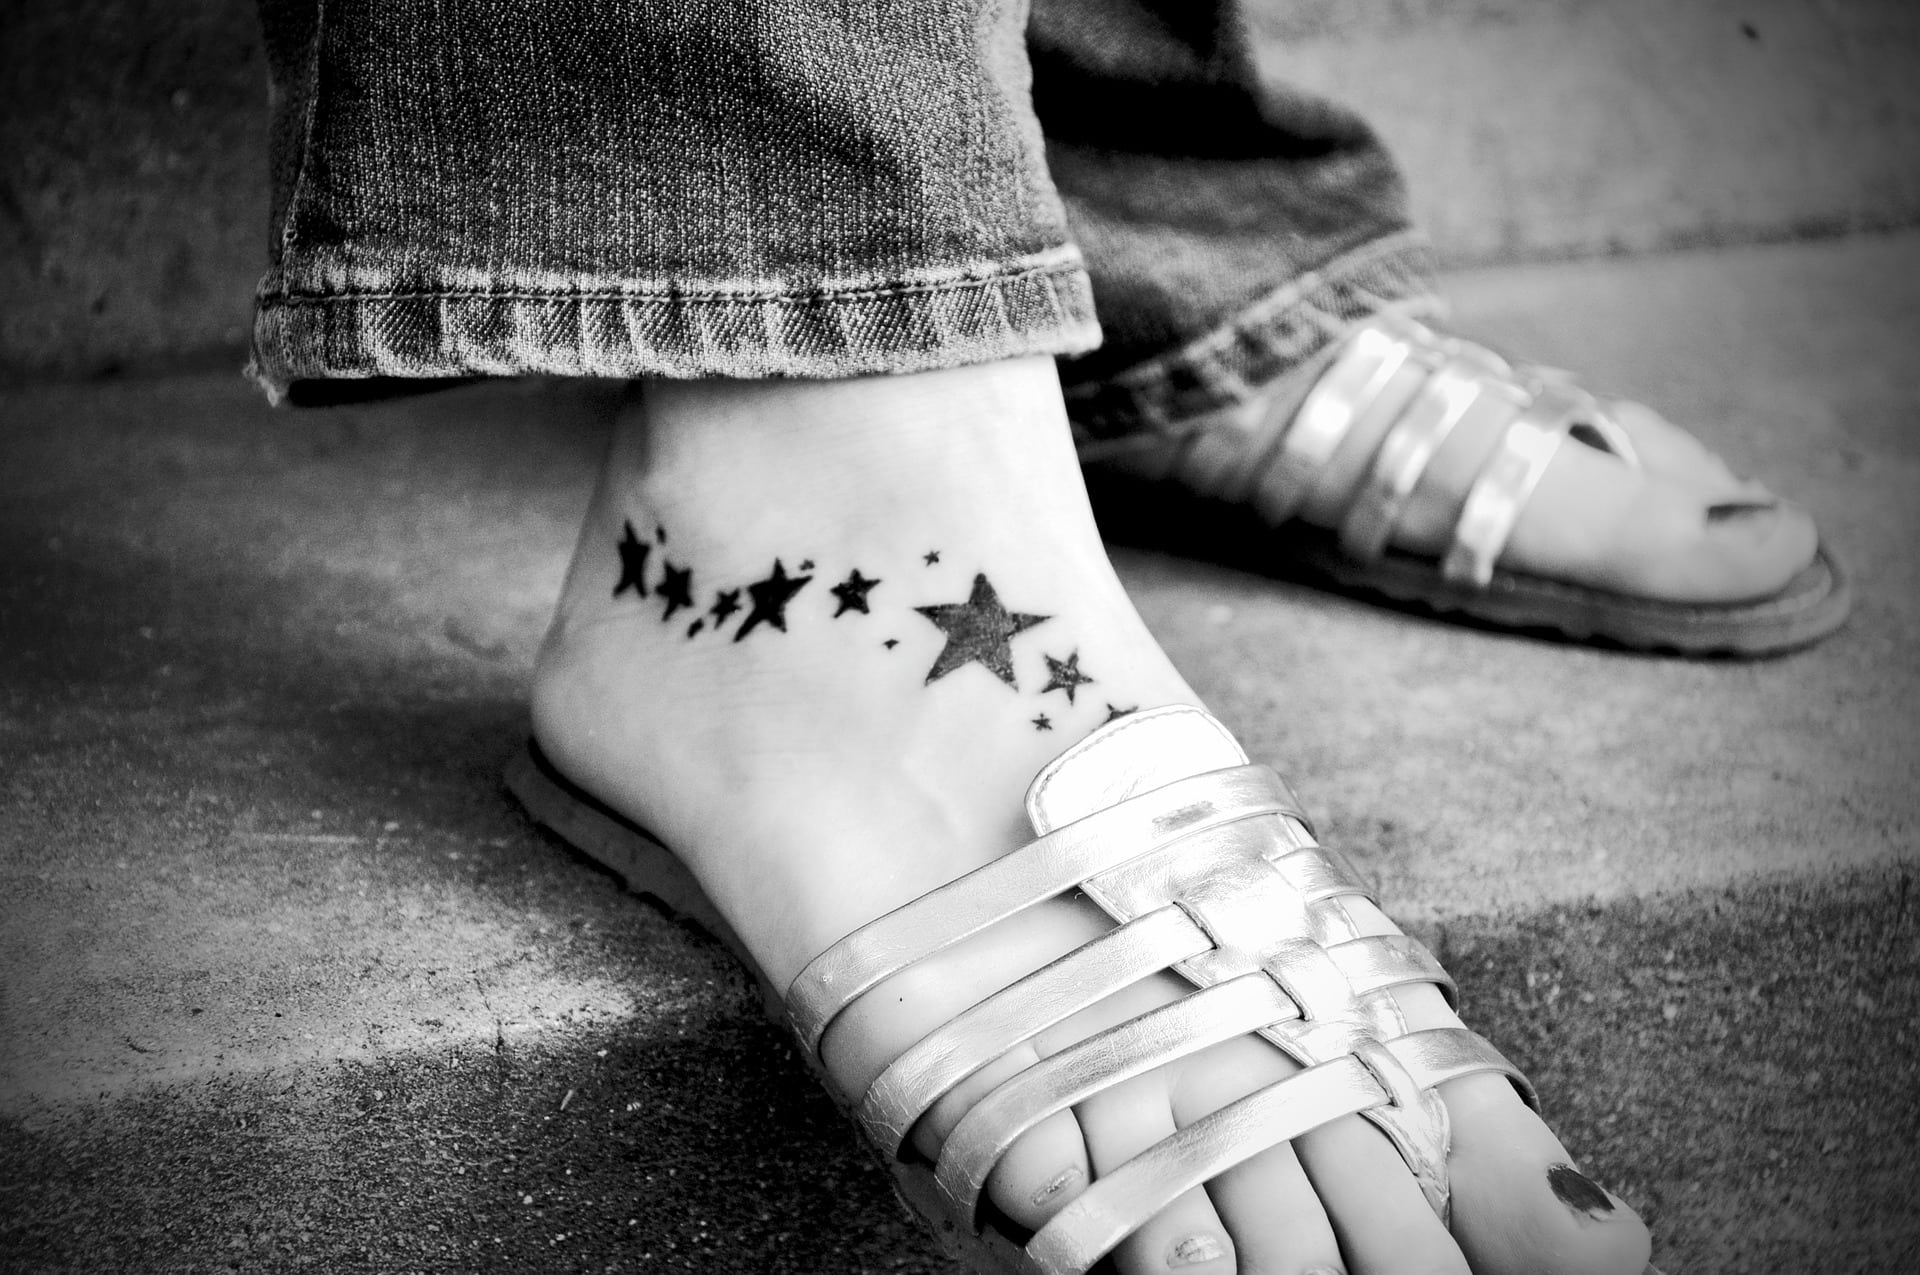 Tattoo of butterflies on foot, small and pretty|The Holy Mess